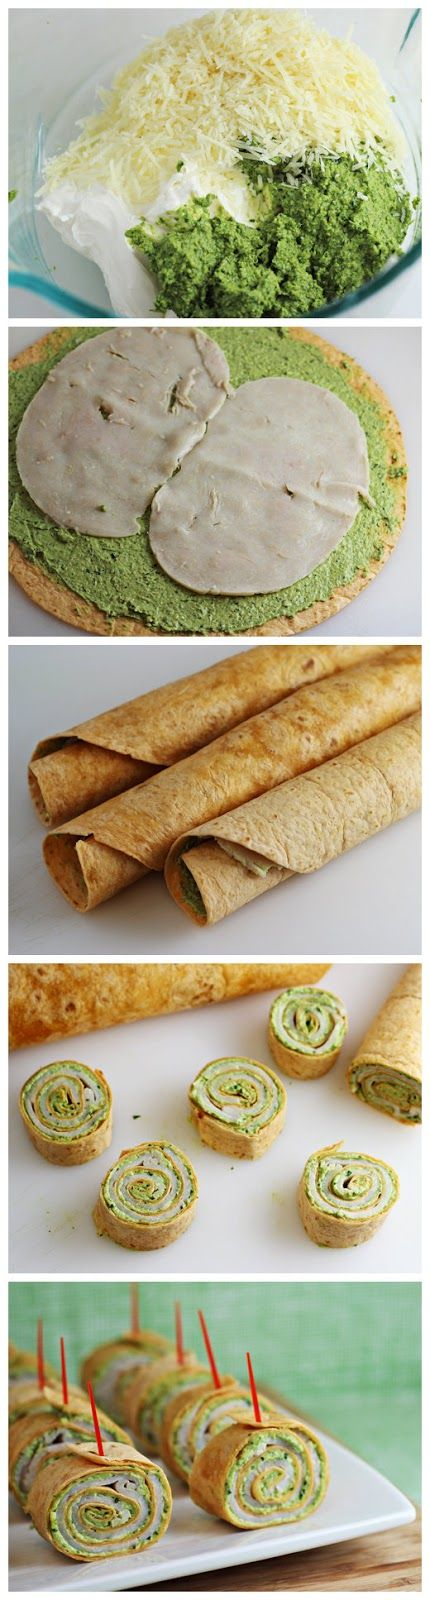 Pesto Tortilla Pinwheels--looks like a great appetizer